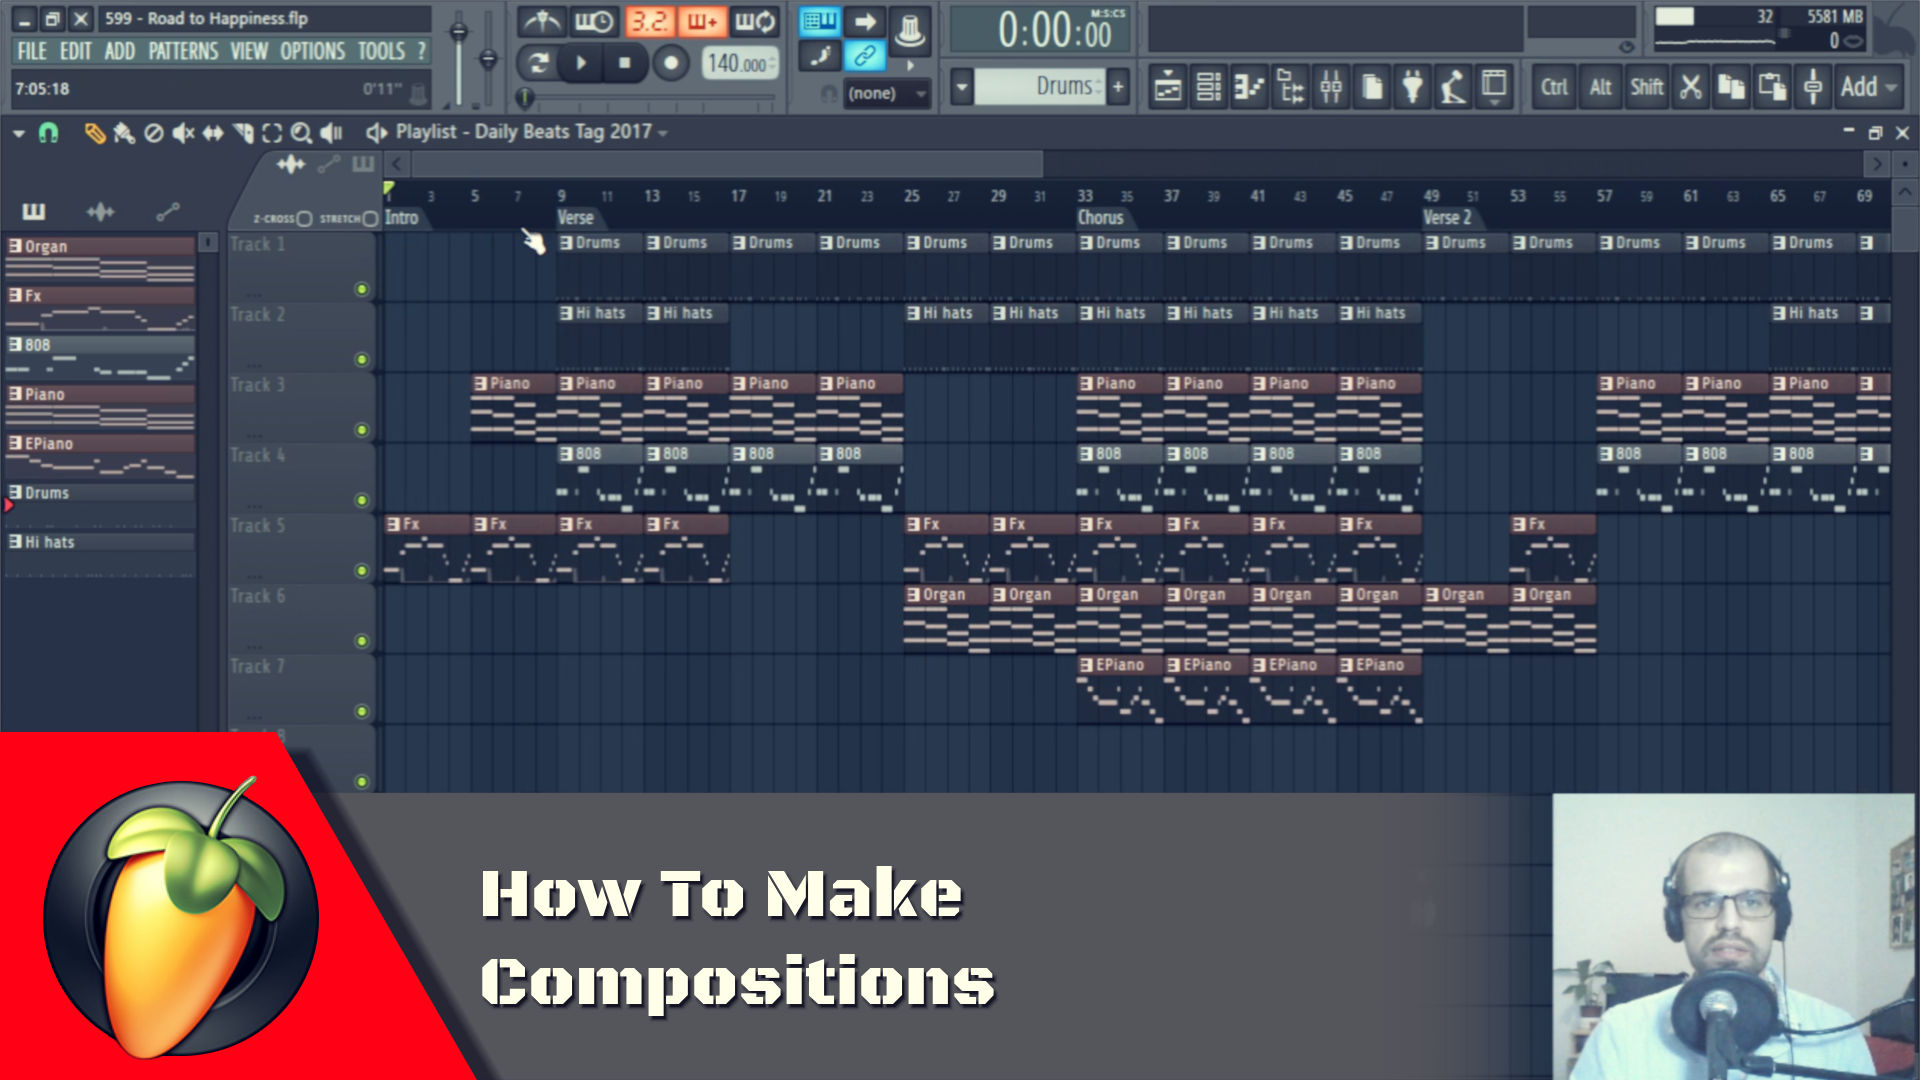 How To Make Compositions